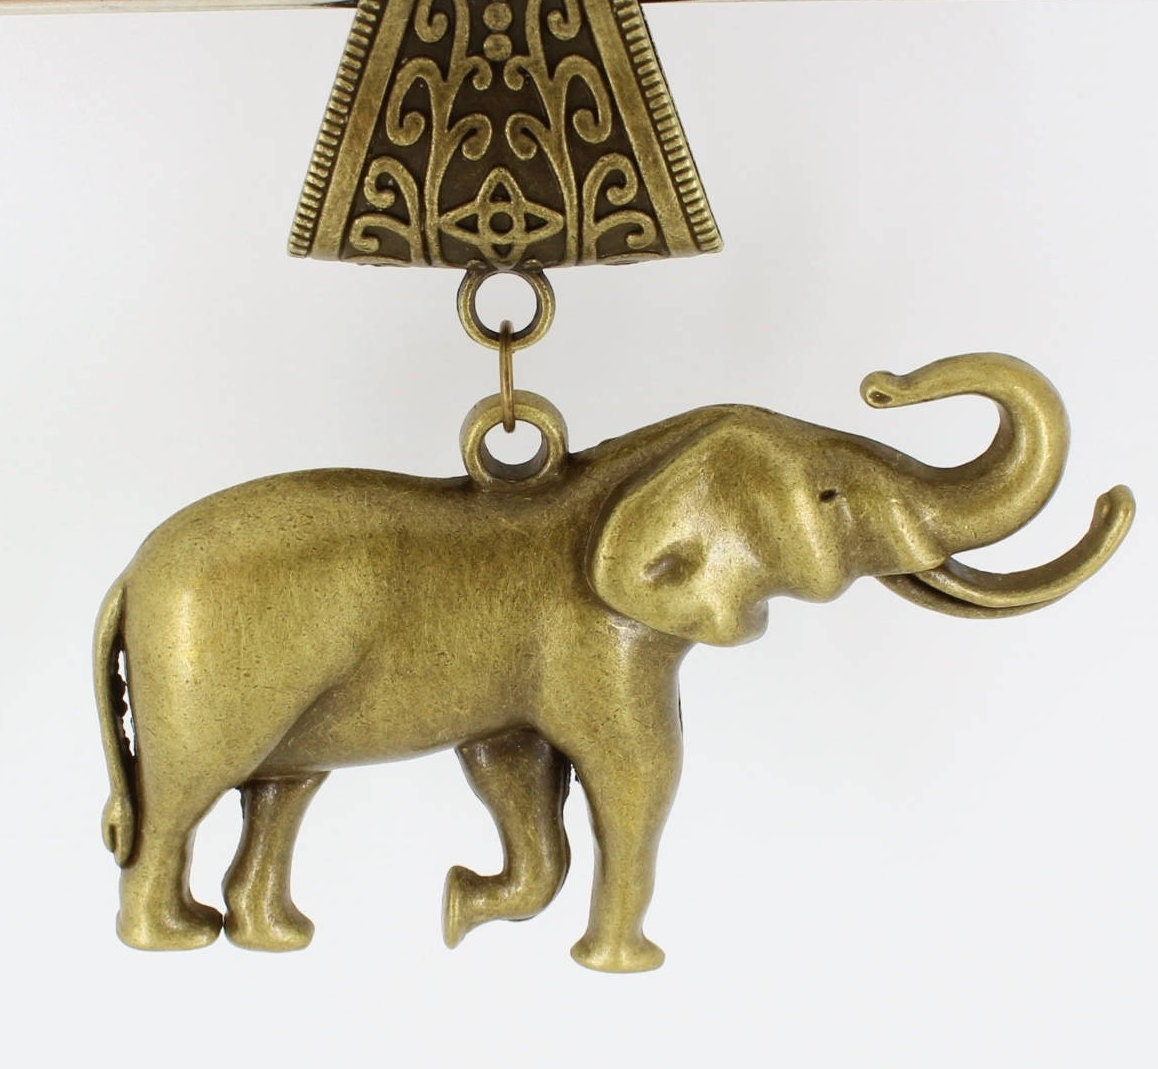 Large,Elephant,Antique,Brass,Scarf,Pendant,~,Accessory~,Charm,Jewelry,scarf_charm,scarf_accessory,scarf_pendant,scarf_jewelry,scarf_slide,scarf_bling,antique_brass,elephant_scarf_slide,elephant_pendant,brass_elephant,elephant_with_tusks,animal_lover_gift,elephant pendant,antique brass scarf bail,jump ring